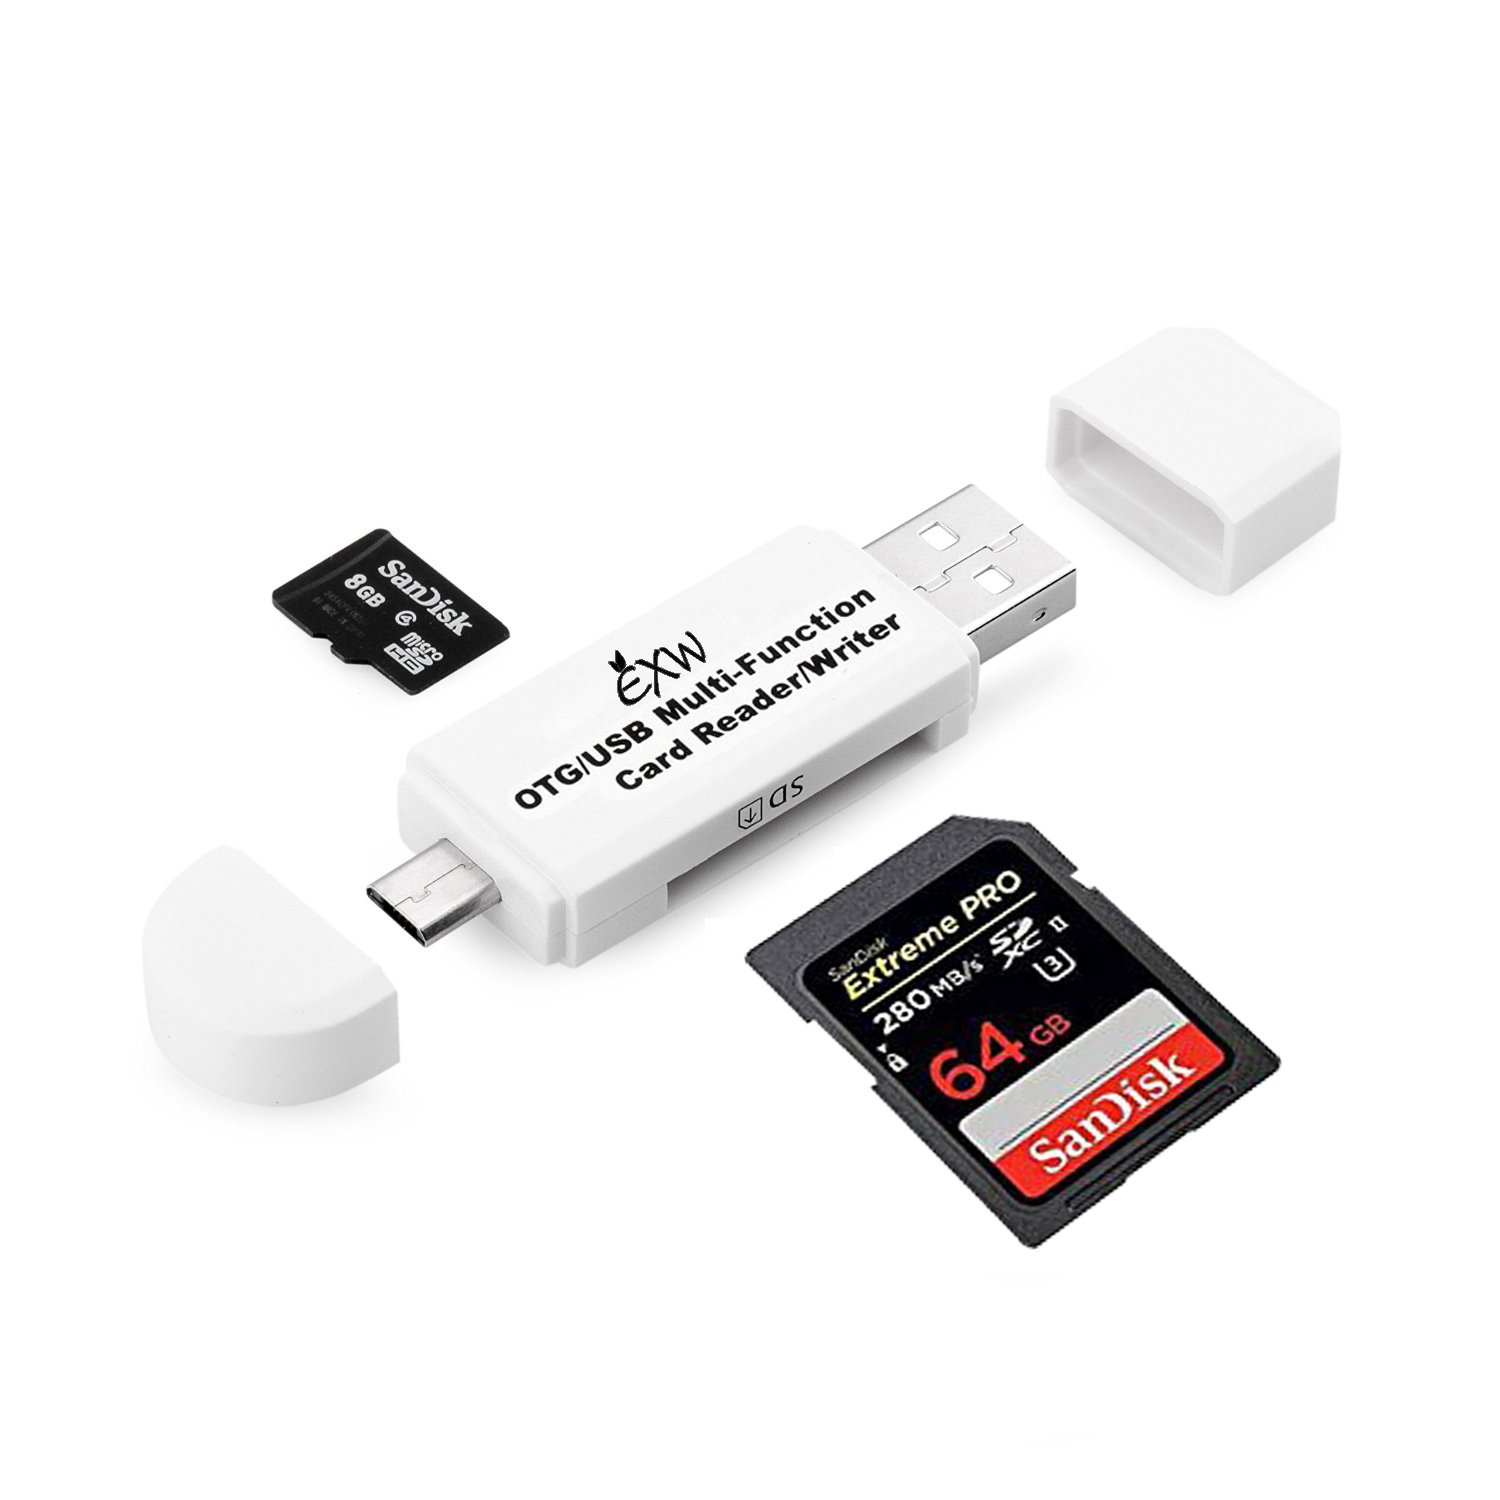 micro usb sd flash memory card adapter reader smart phone notebook tablet pc new ebay. Black Bedroom Furniture Sets. Home Design Ideas